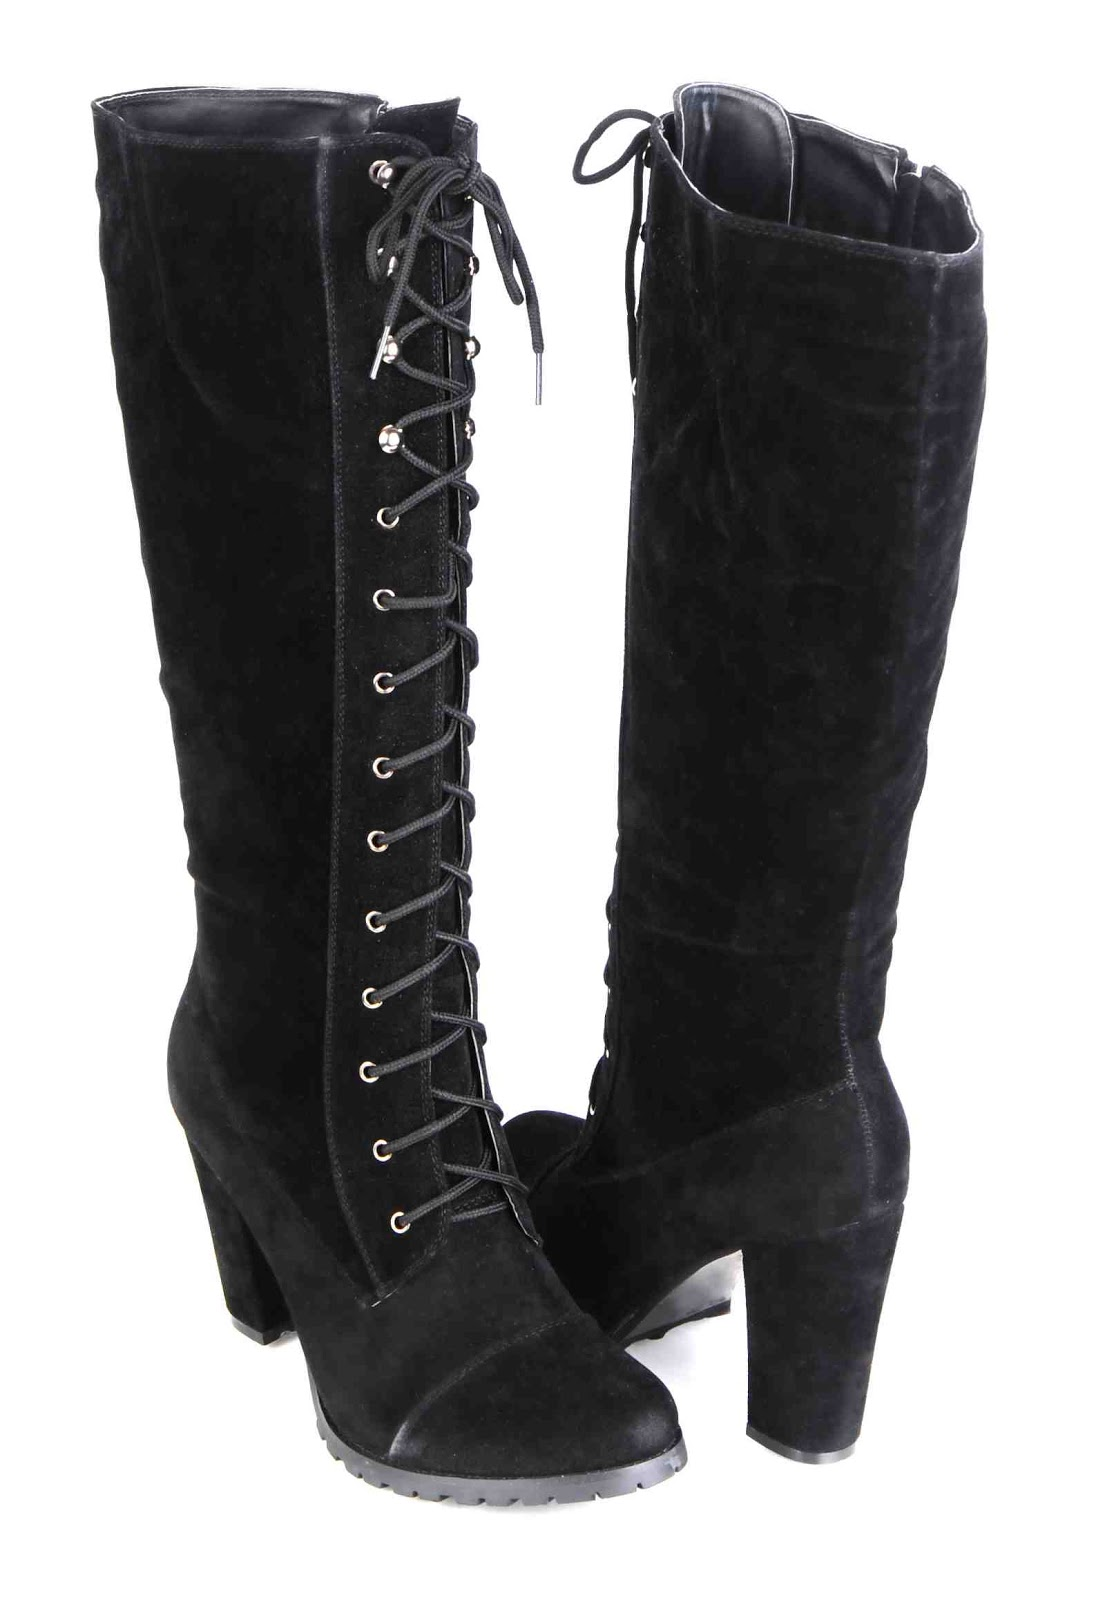 knee high lace up winter boots national sheriffs